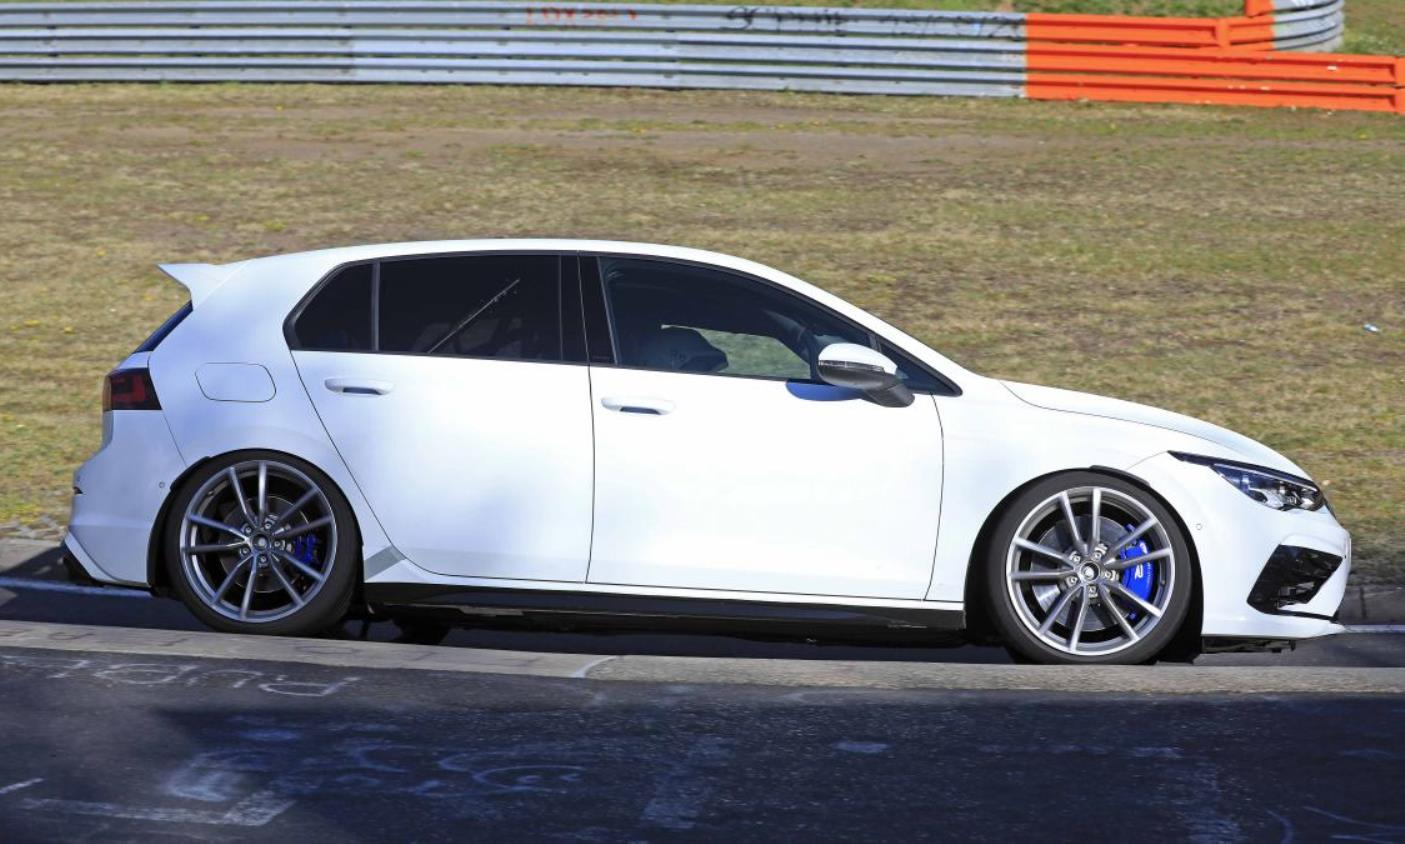 VW Golf R Mk8 profile